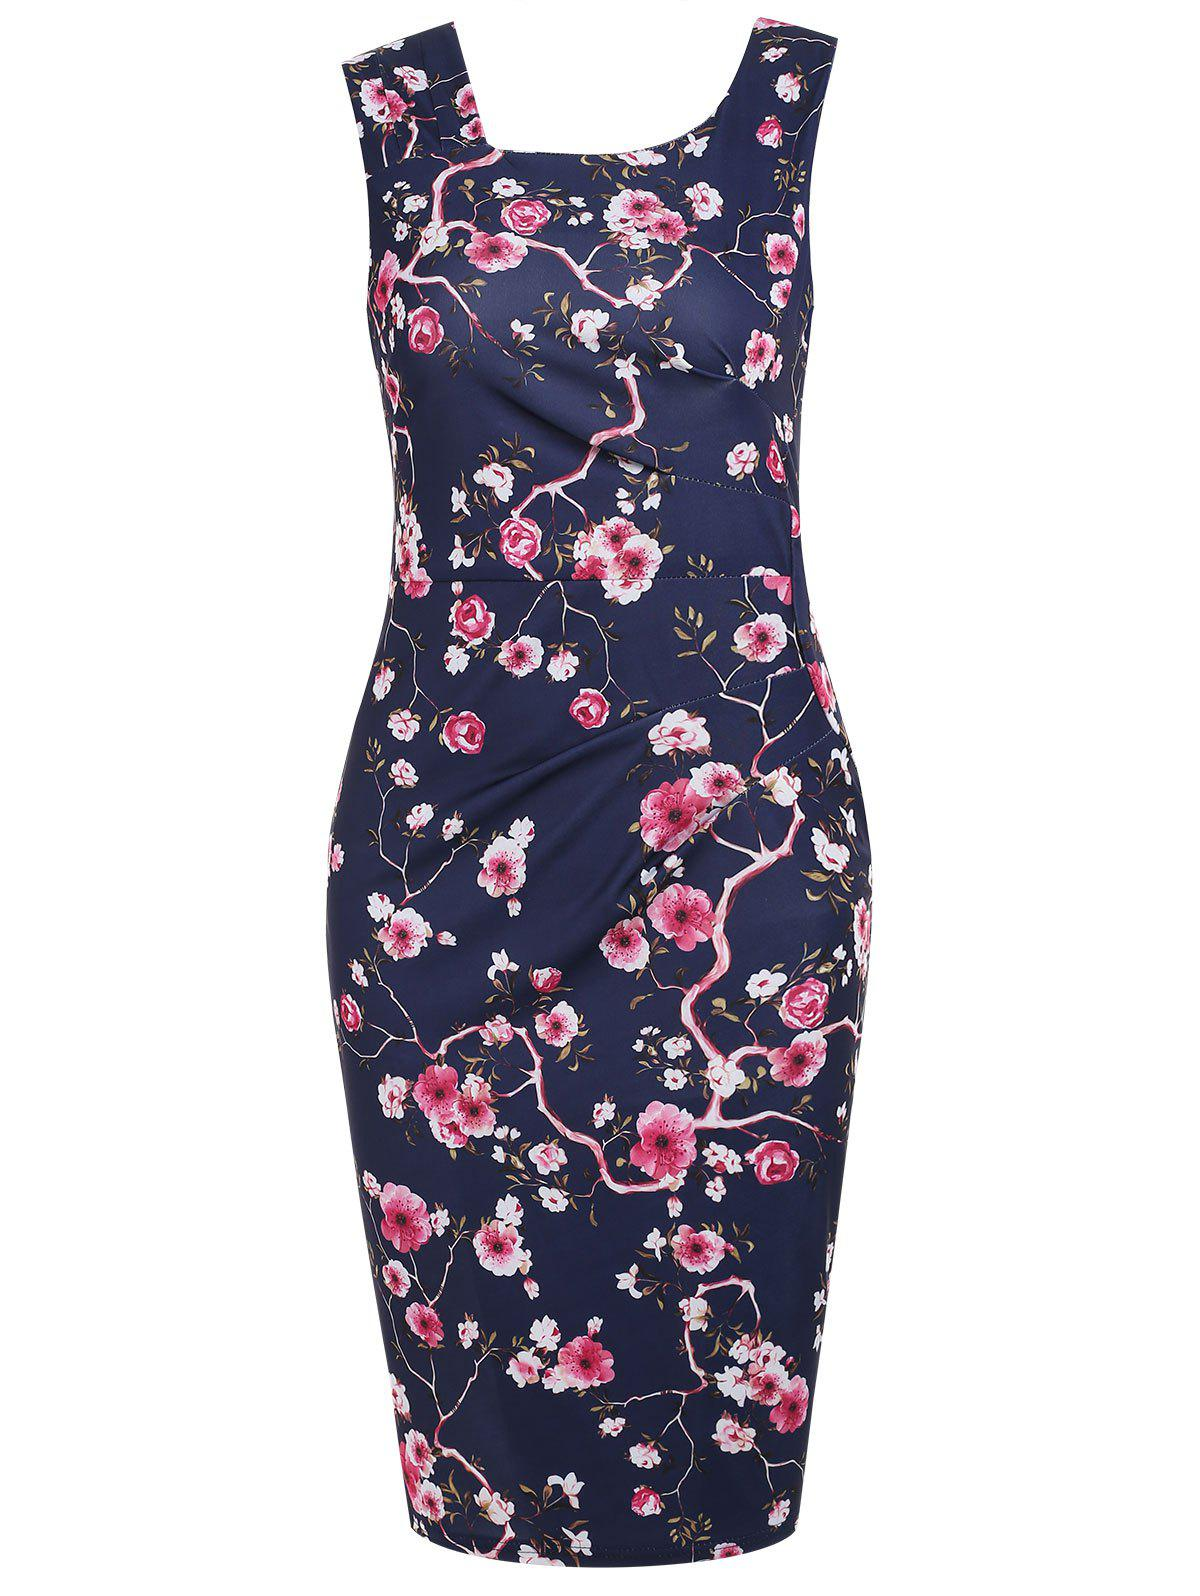 Ruched Print Bodycon Dress pmd c05